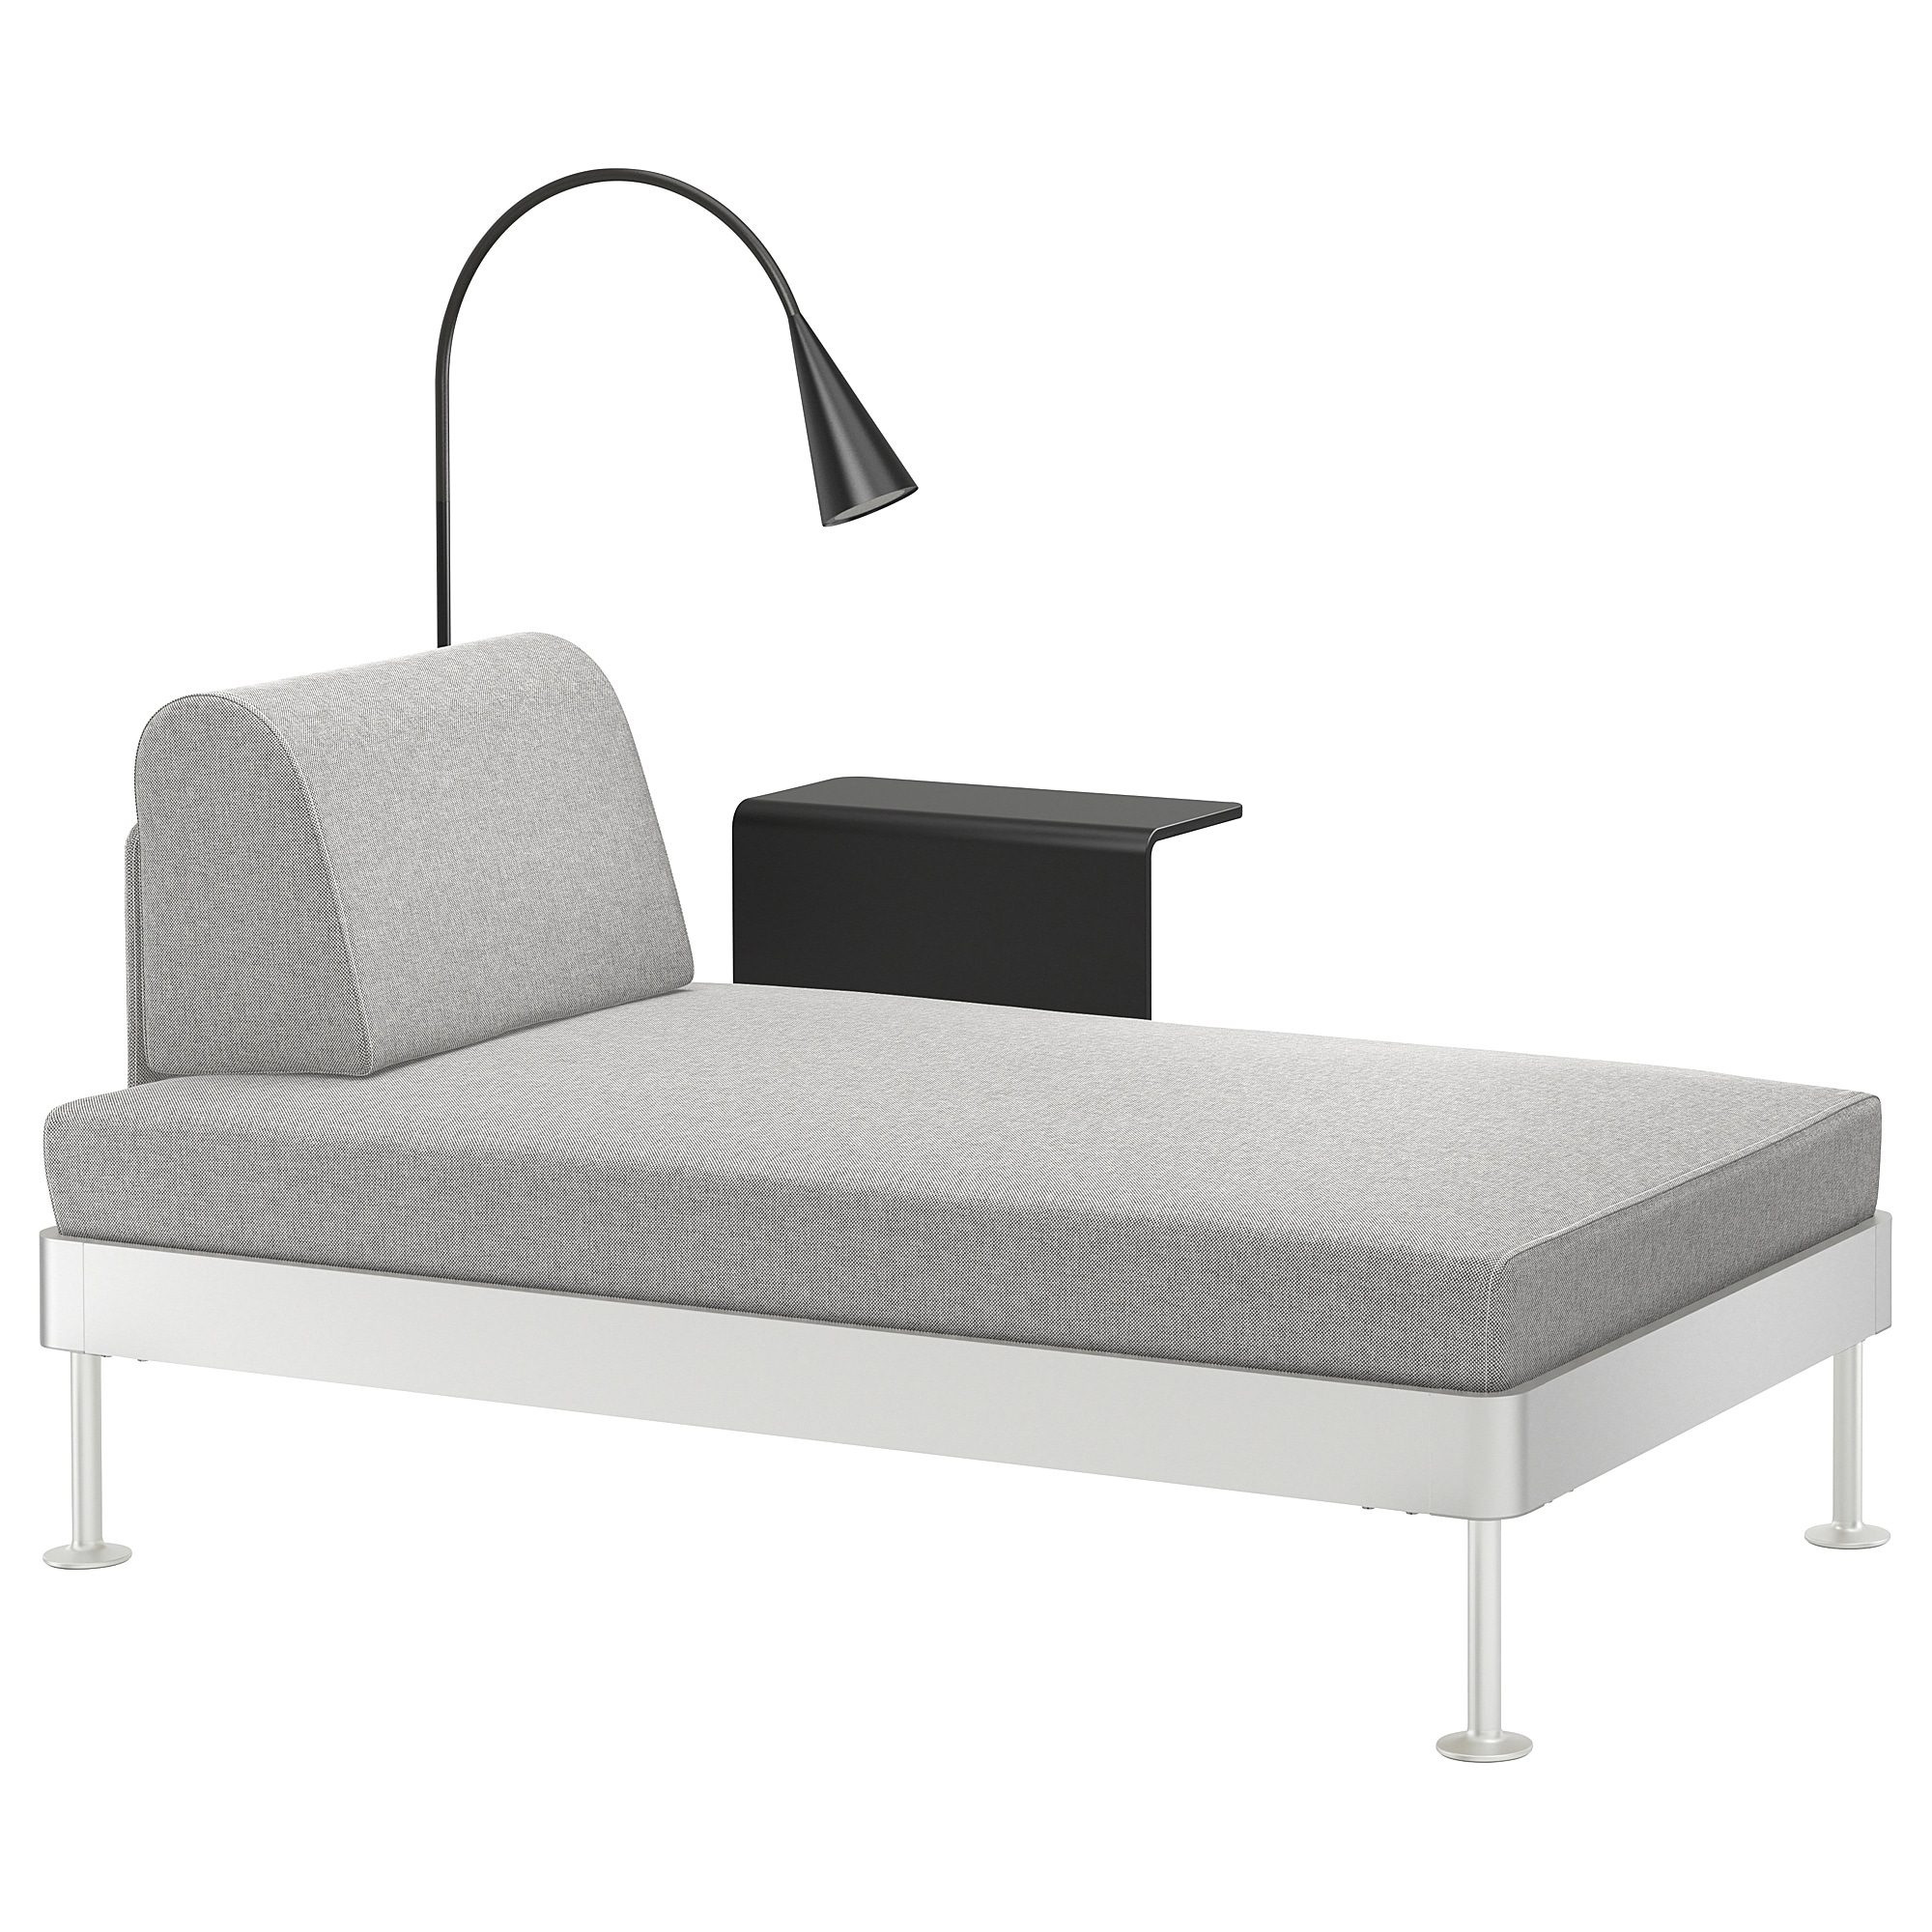 longue cool articles kivik bed ikea lounge storage of full chaise lovely sofa couches tag ideas with size white elegant lugnvik